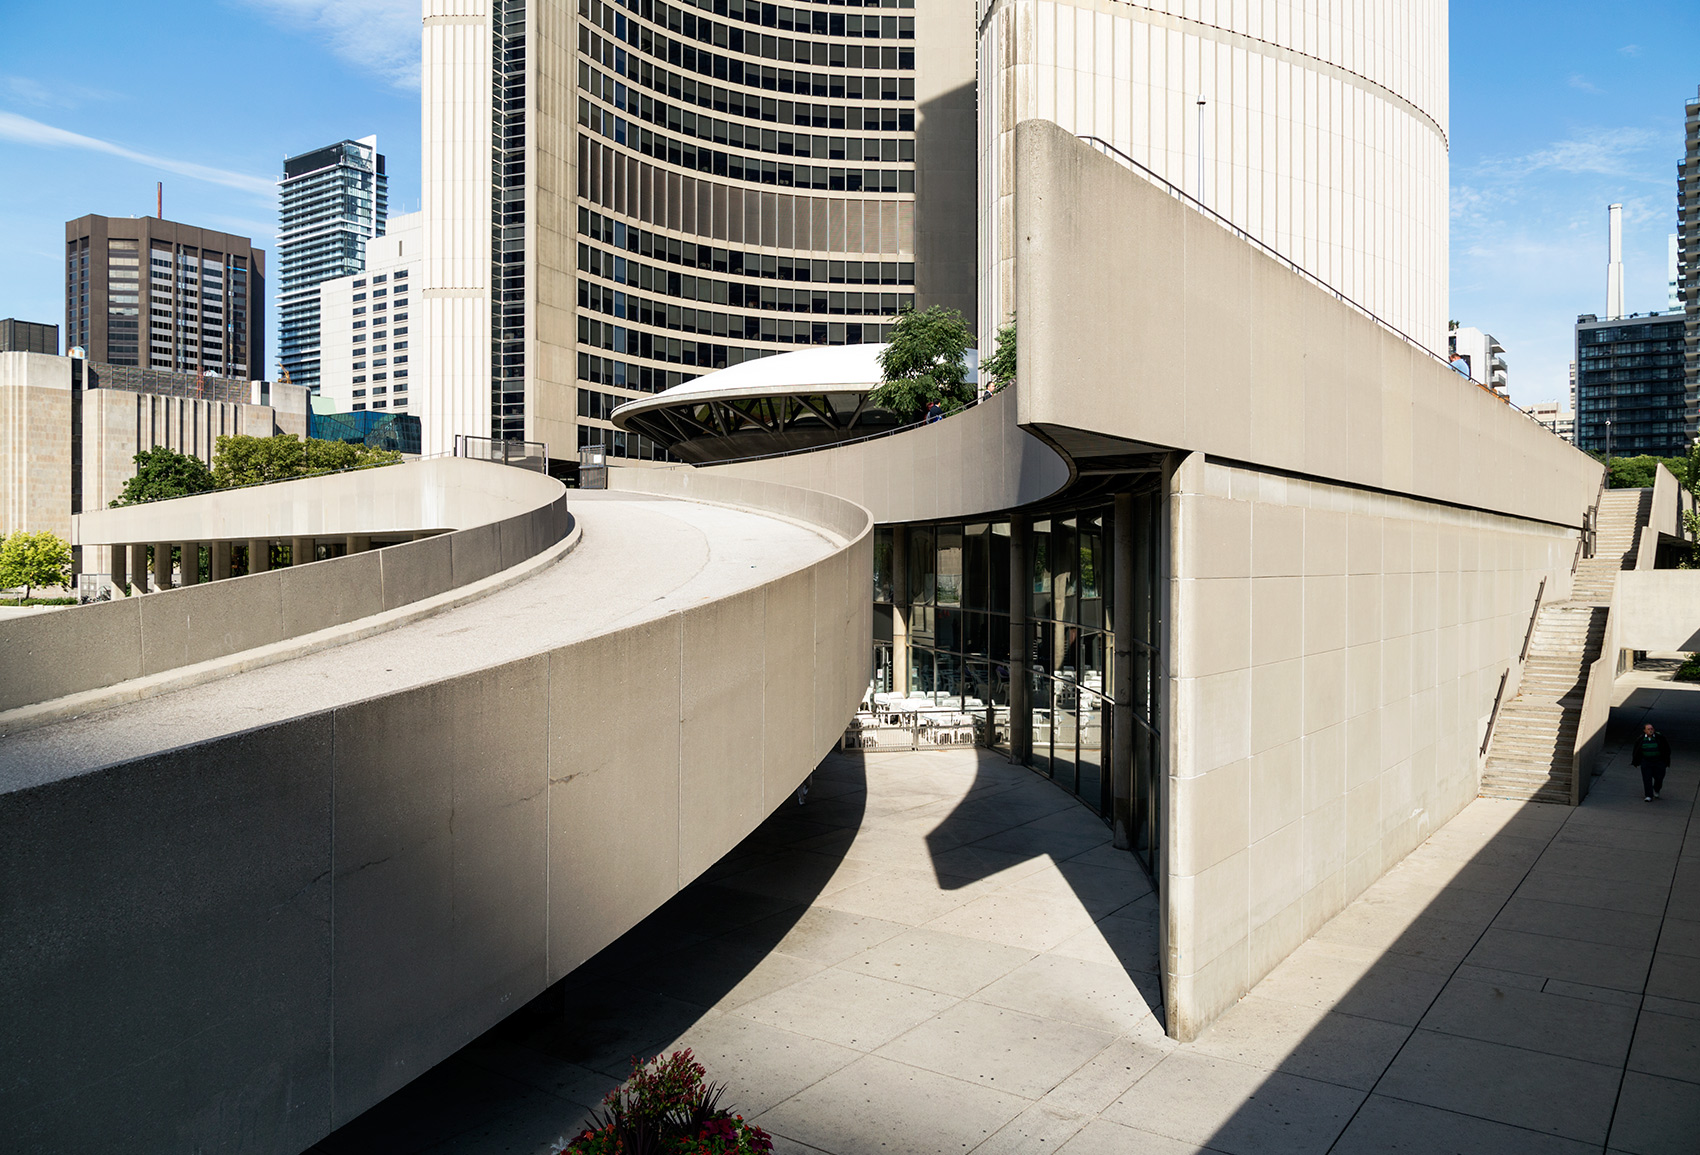 20150913. On its 50th Anniversary, Toronto City Hall is still th